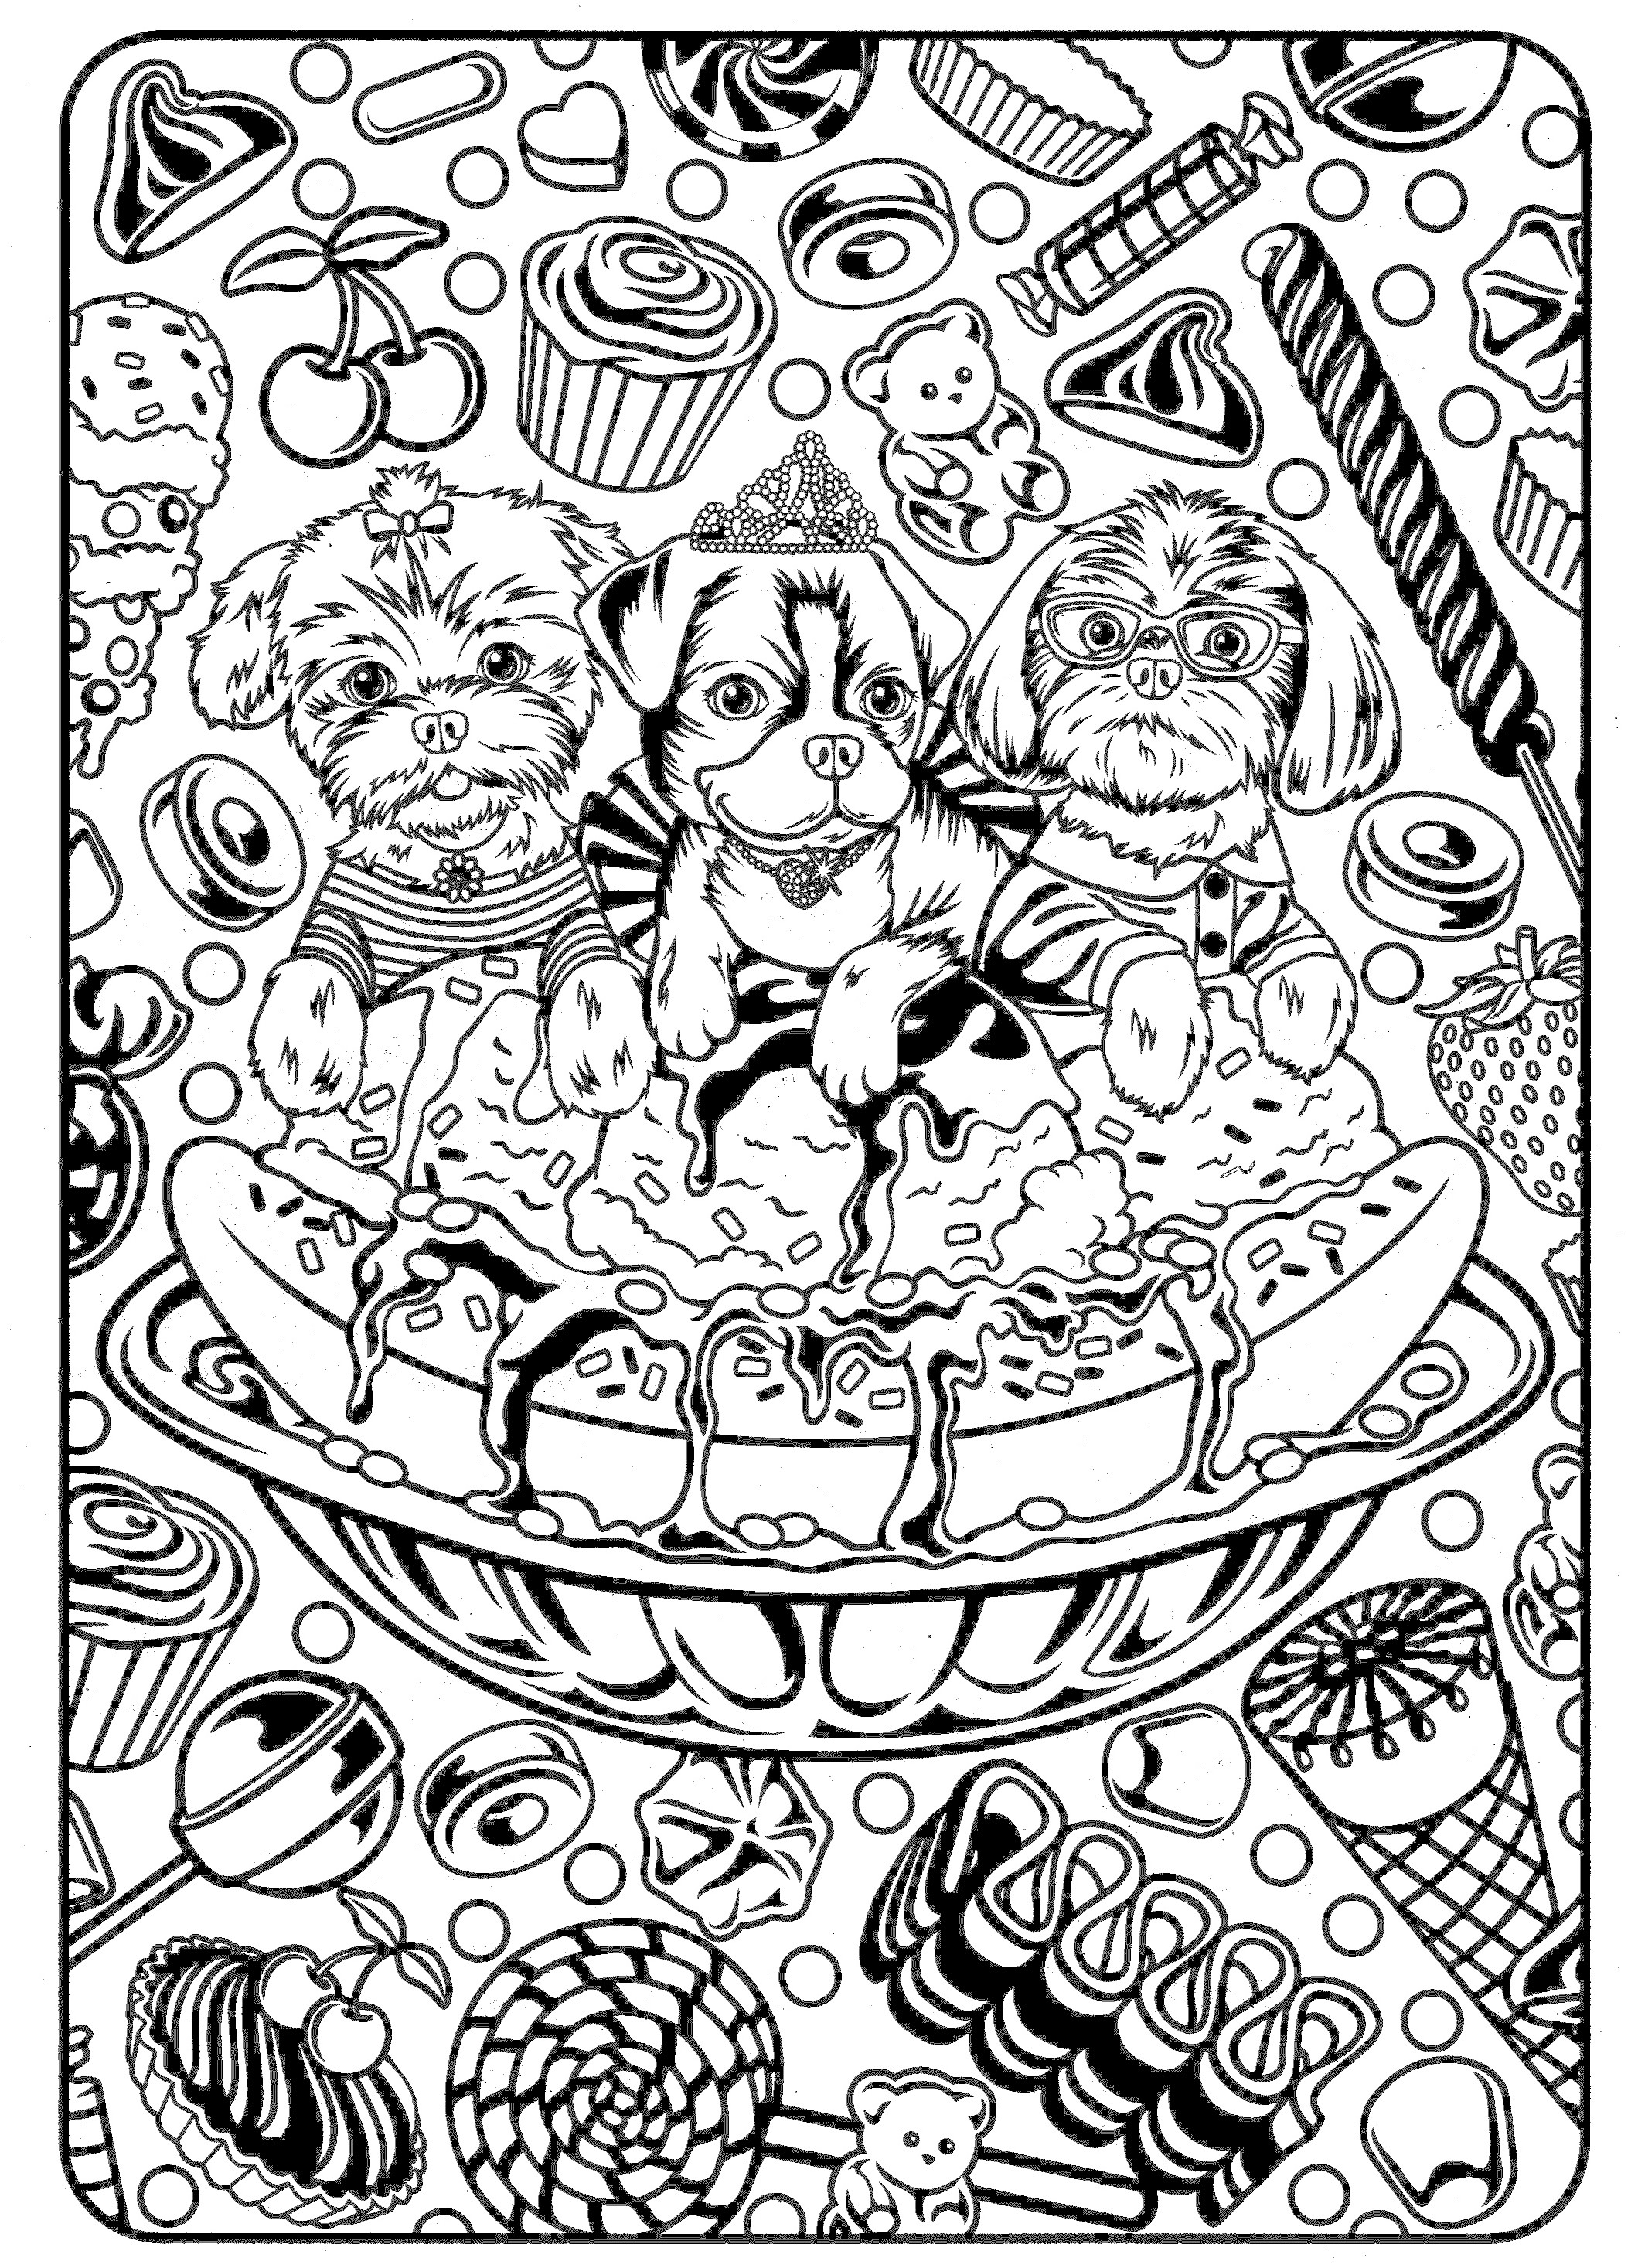 colouring in pictures for girls cute coloring pages best coloring pages for kids colouring pictures girls in for